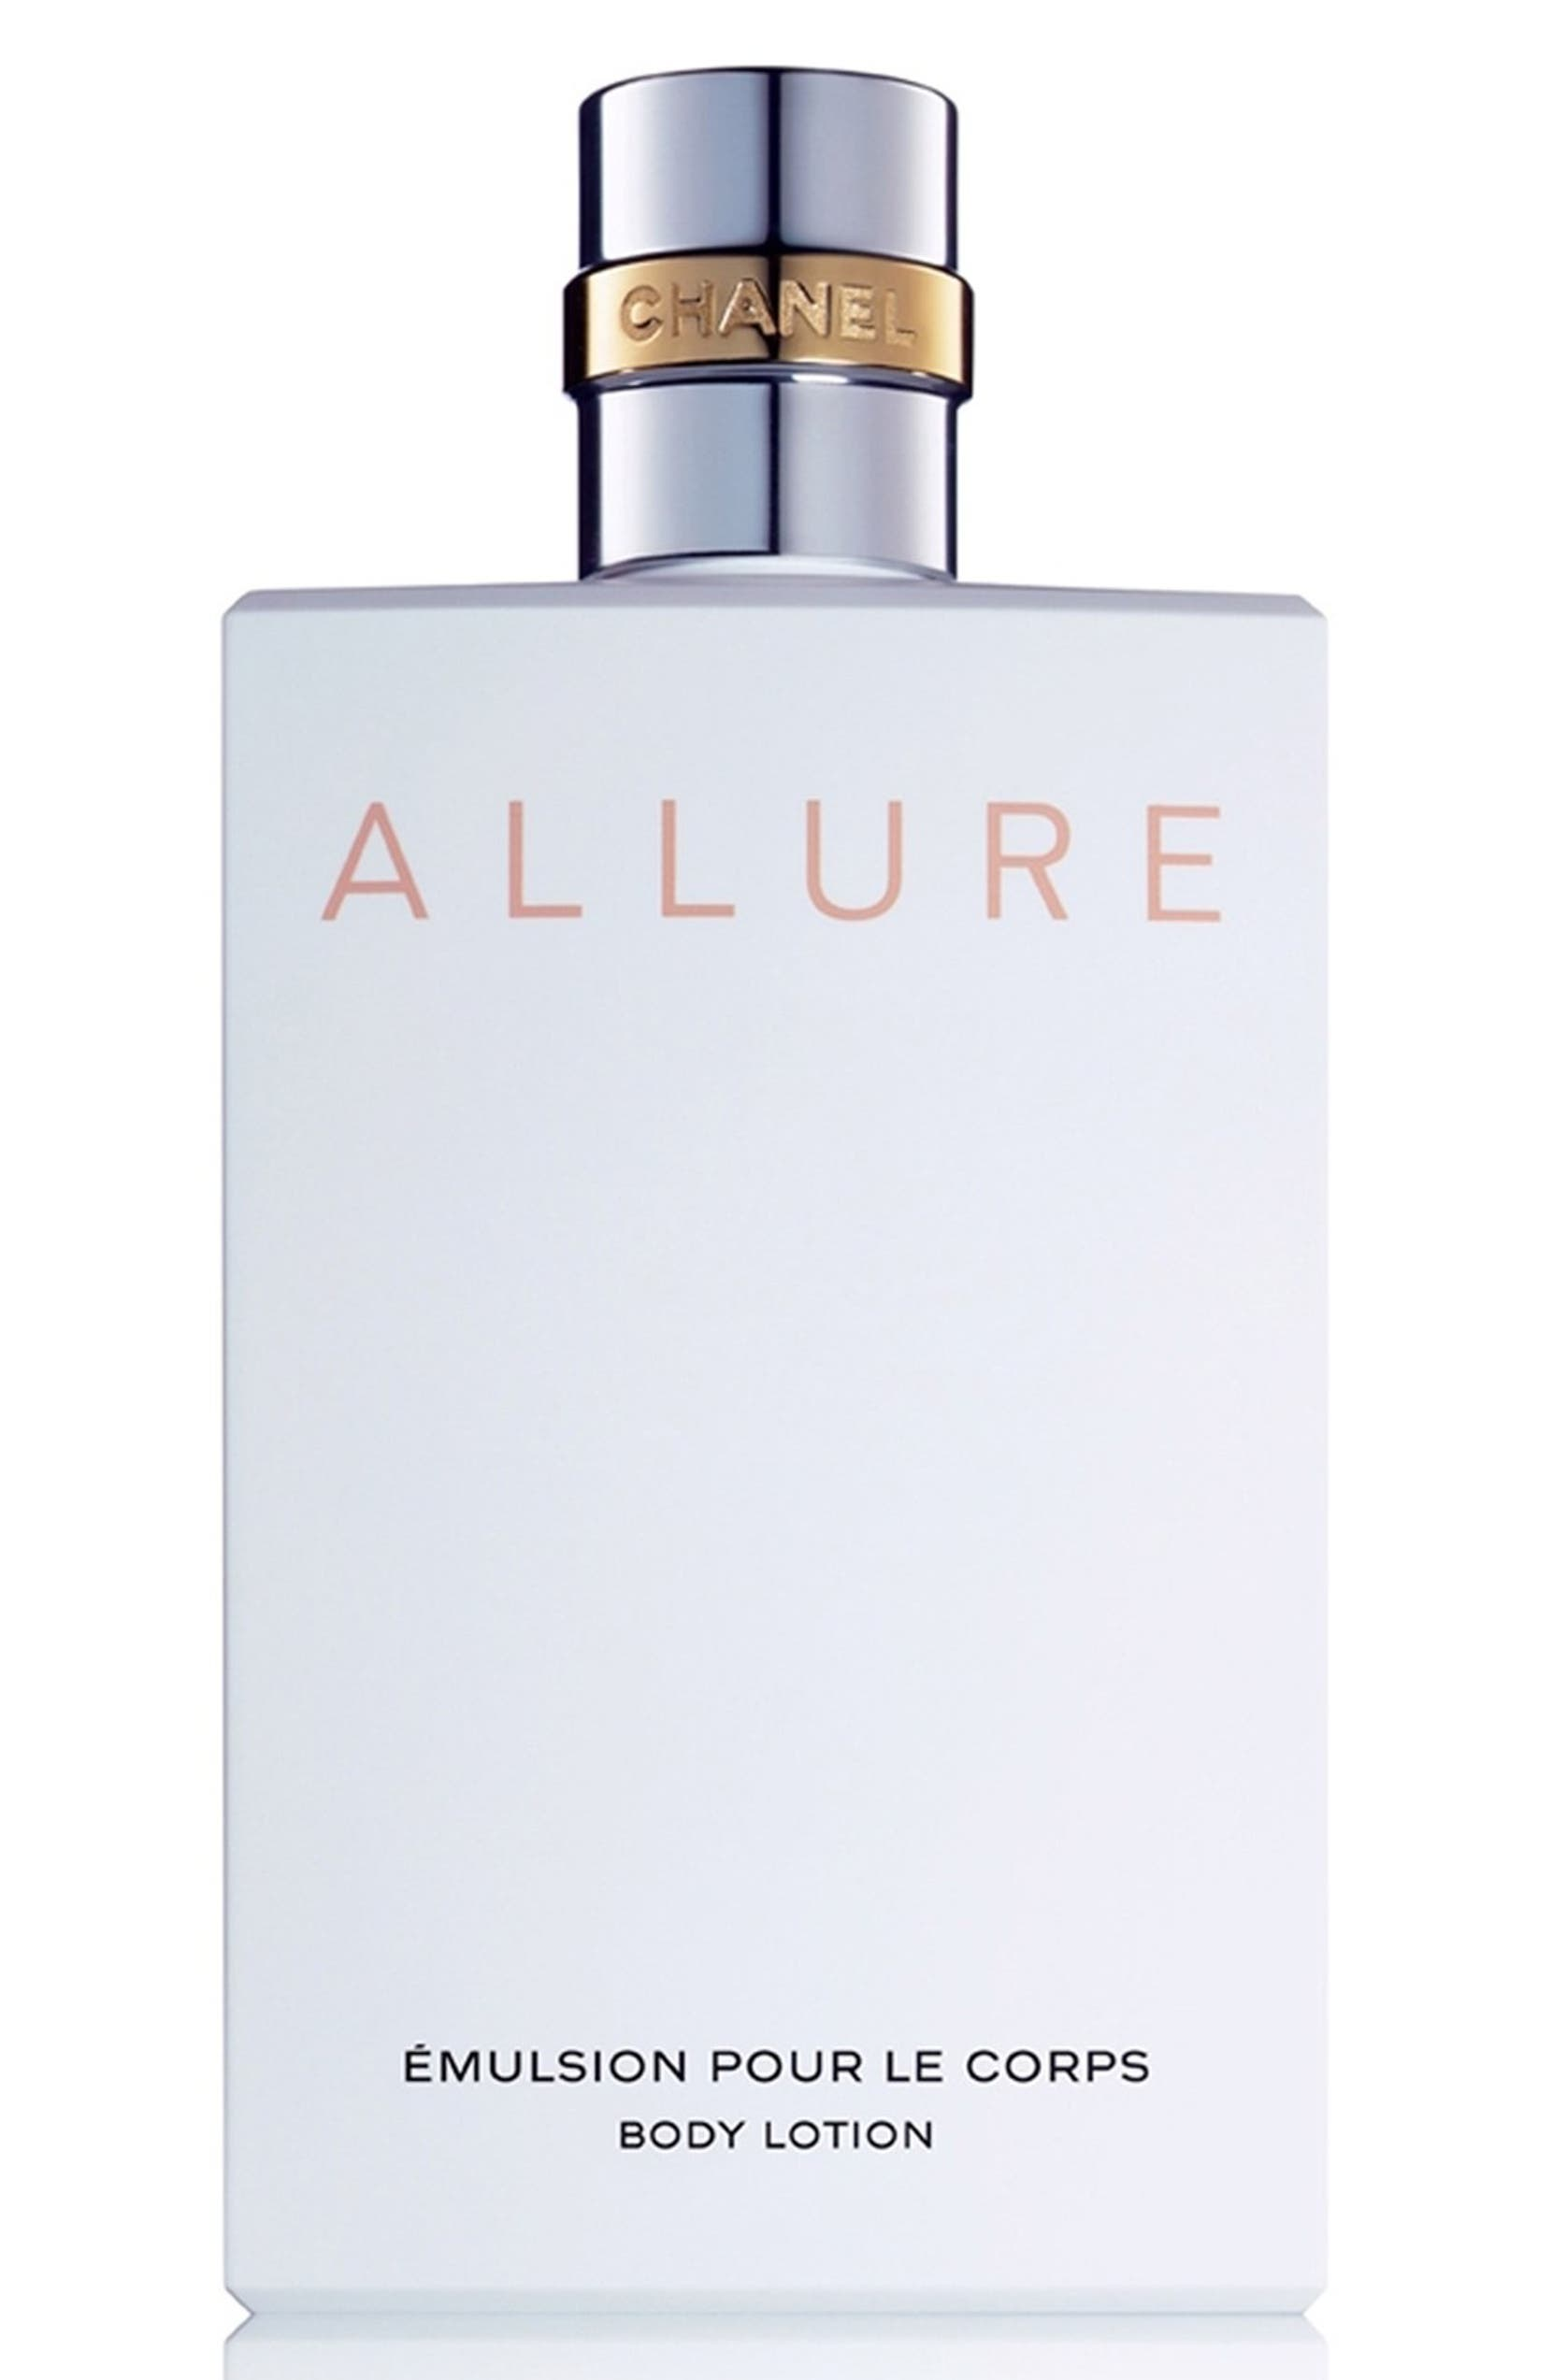 Chanel Allure Body Cream.Allure Body Lotion